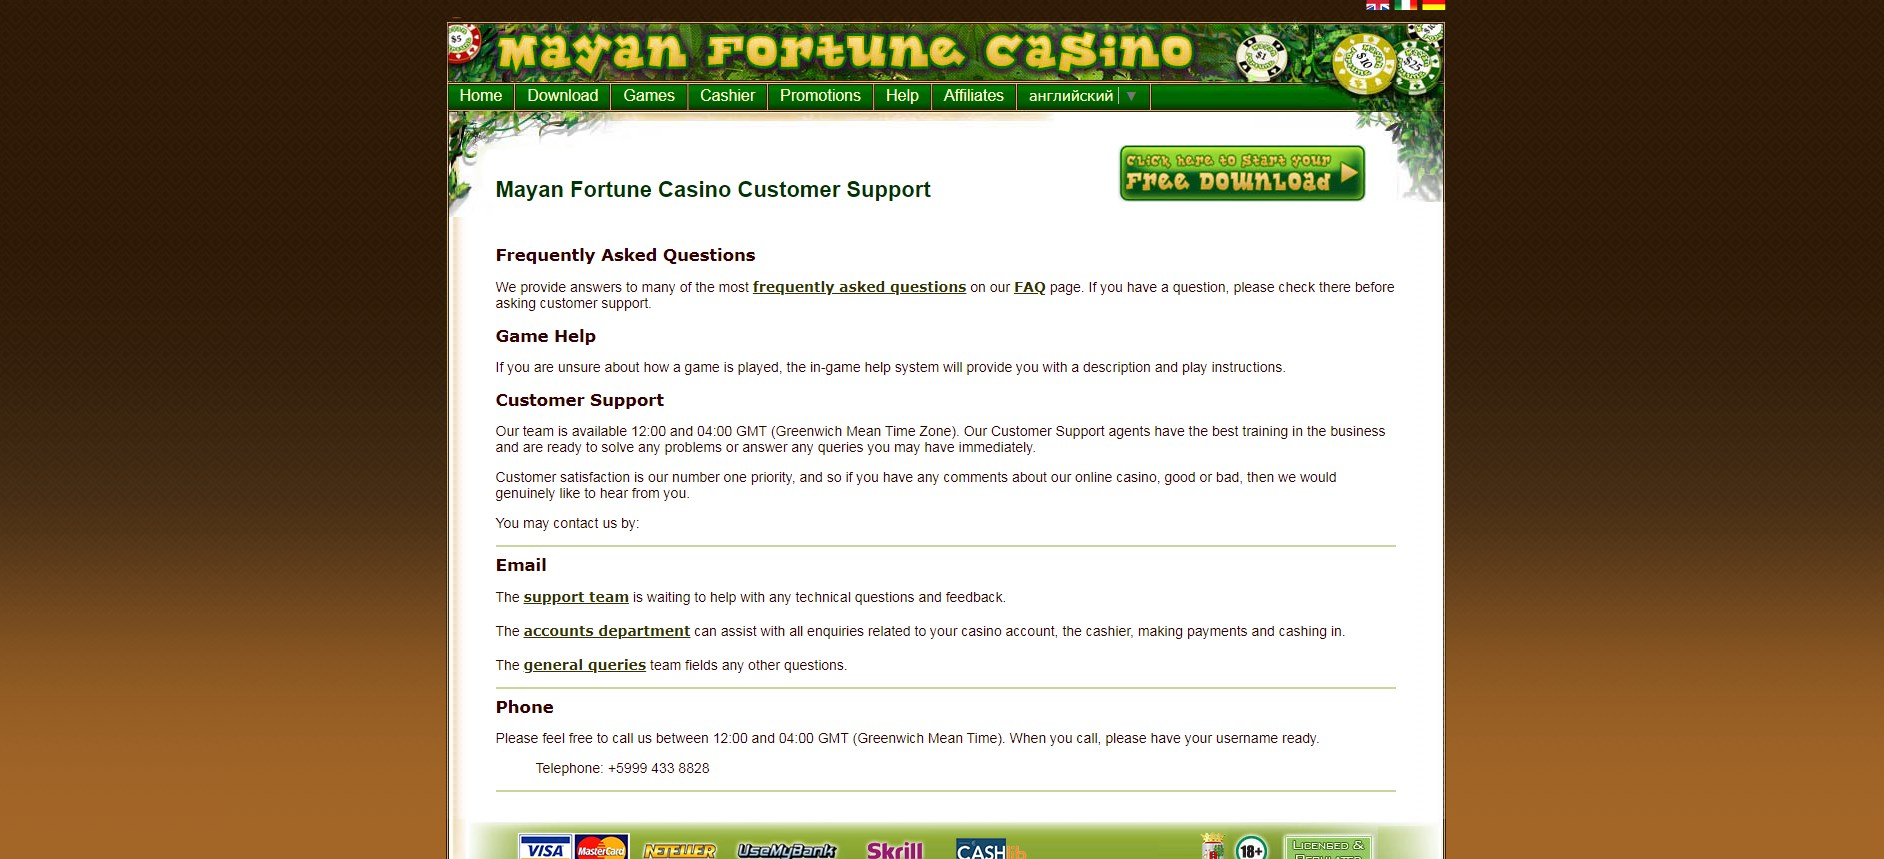 Mayan Fortune Casino Support